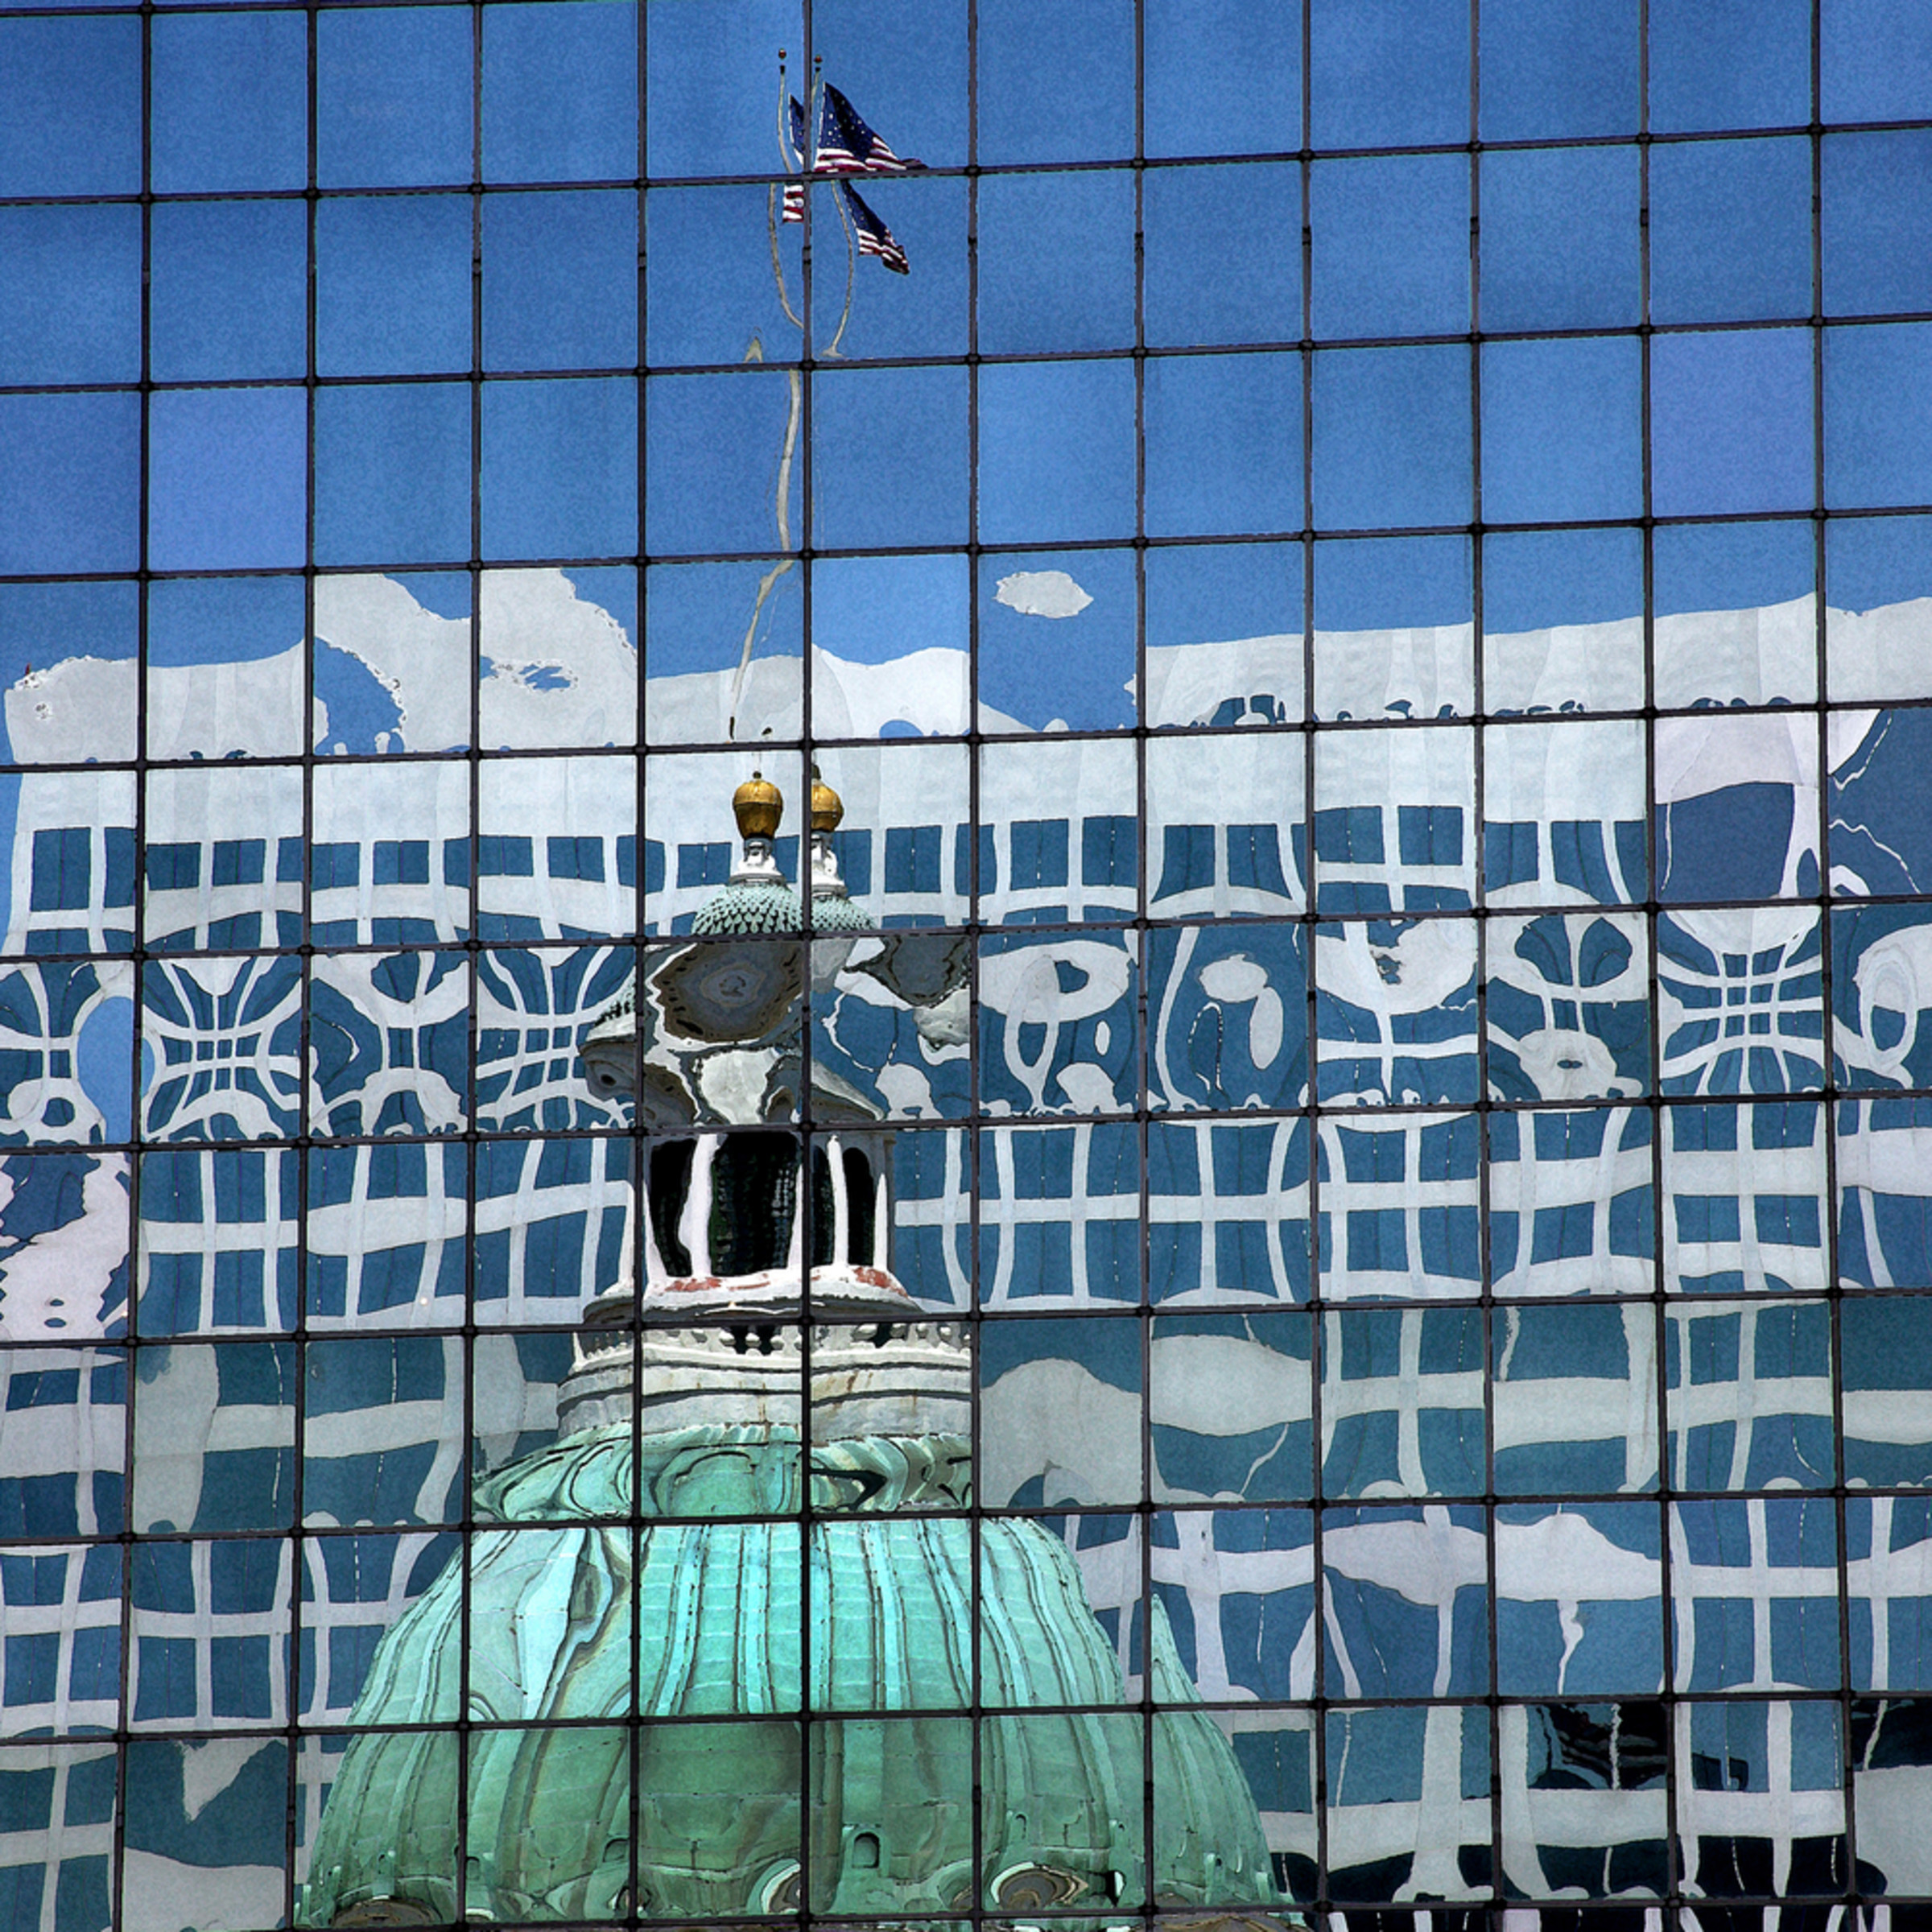 Bobmoore oldcourthouse reflection 7079 jnoyiw